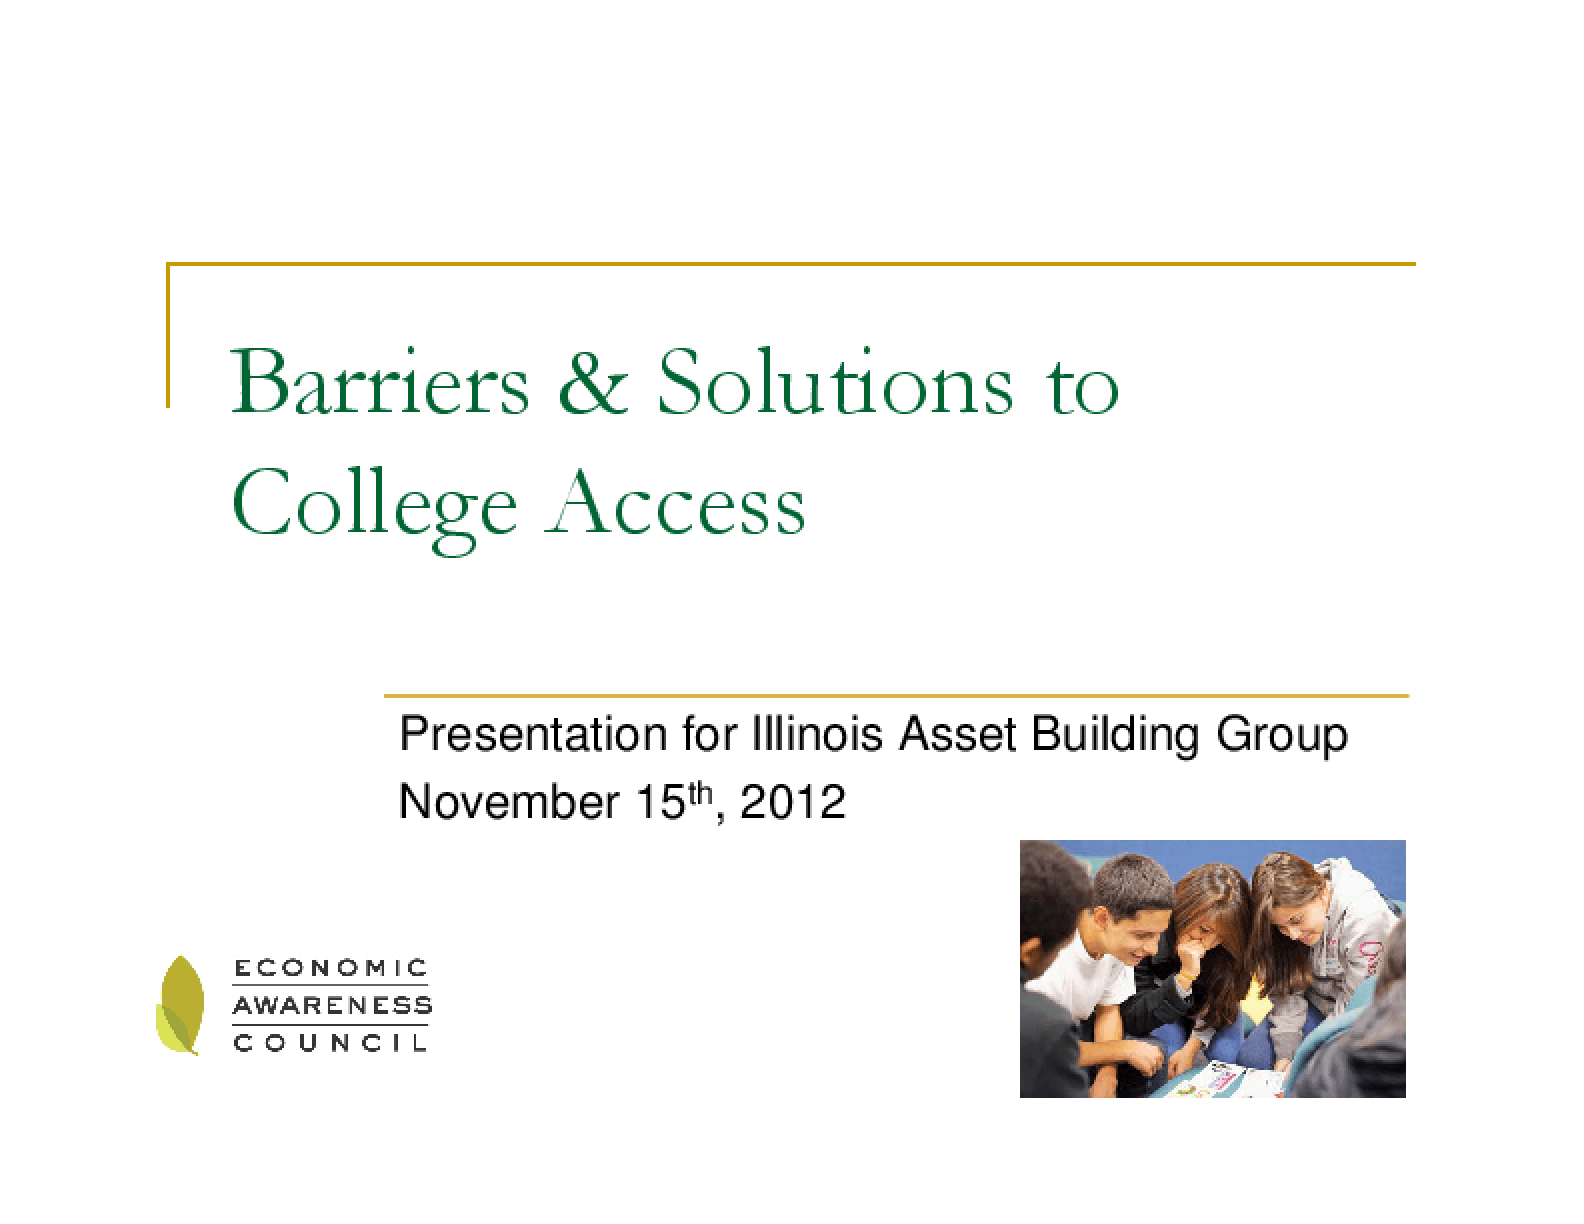 Barriers & Solutions to College Access